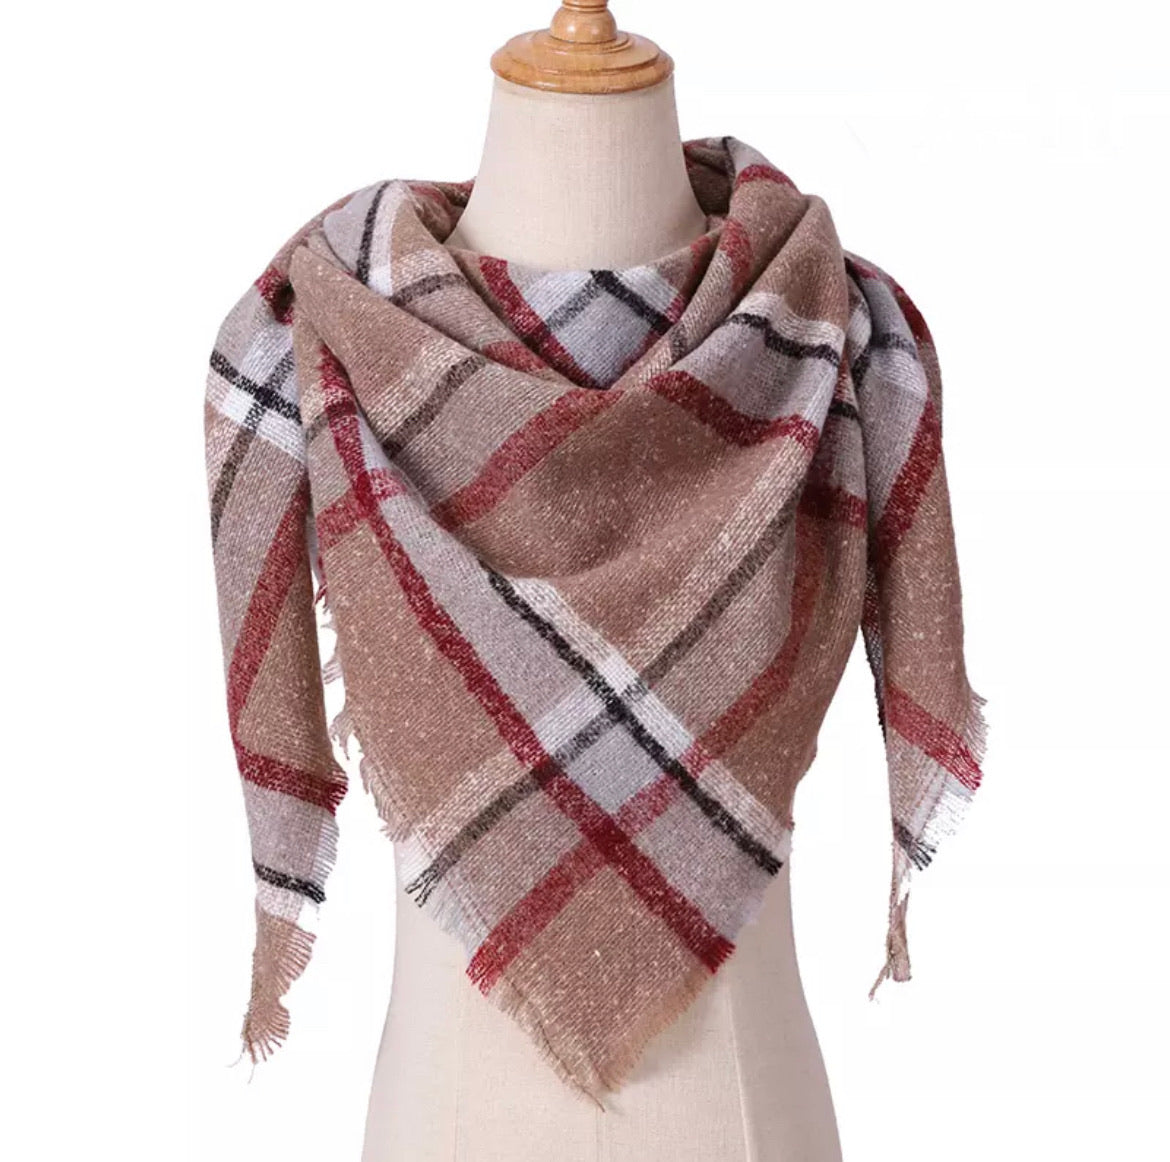 Mocha Burgundy Gray Plaid Triangle Blanket Scarf